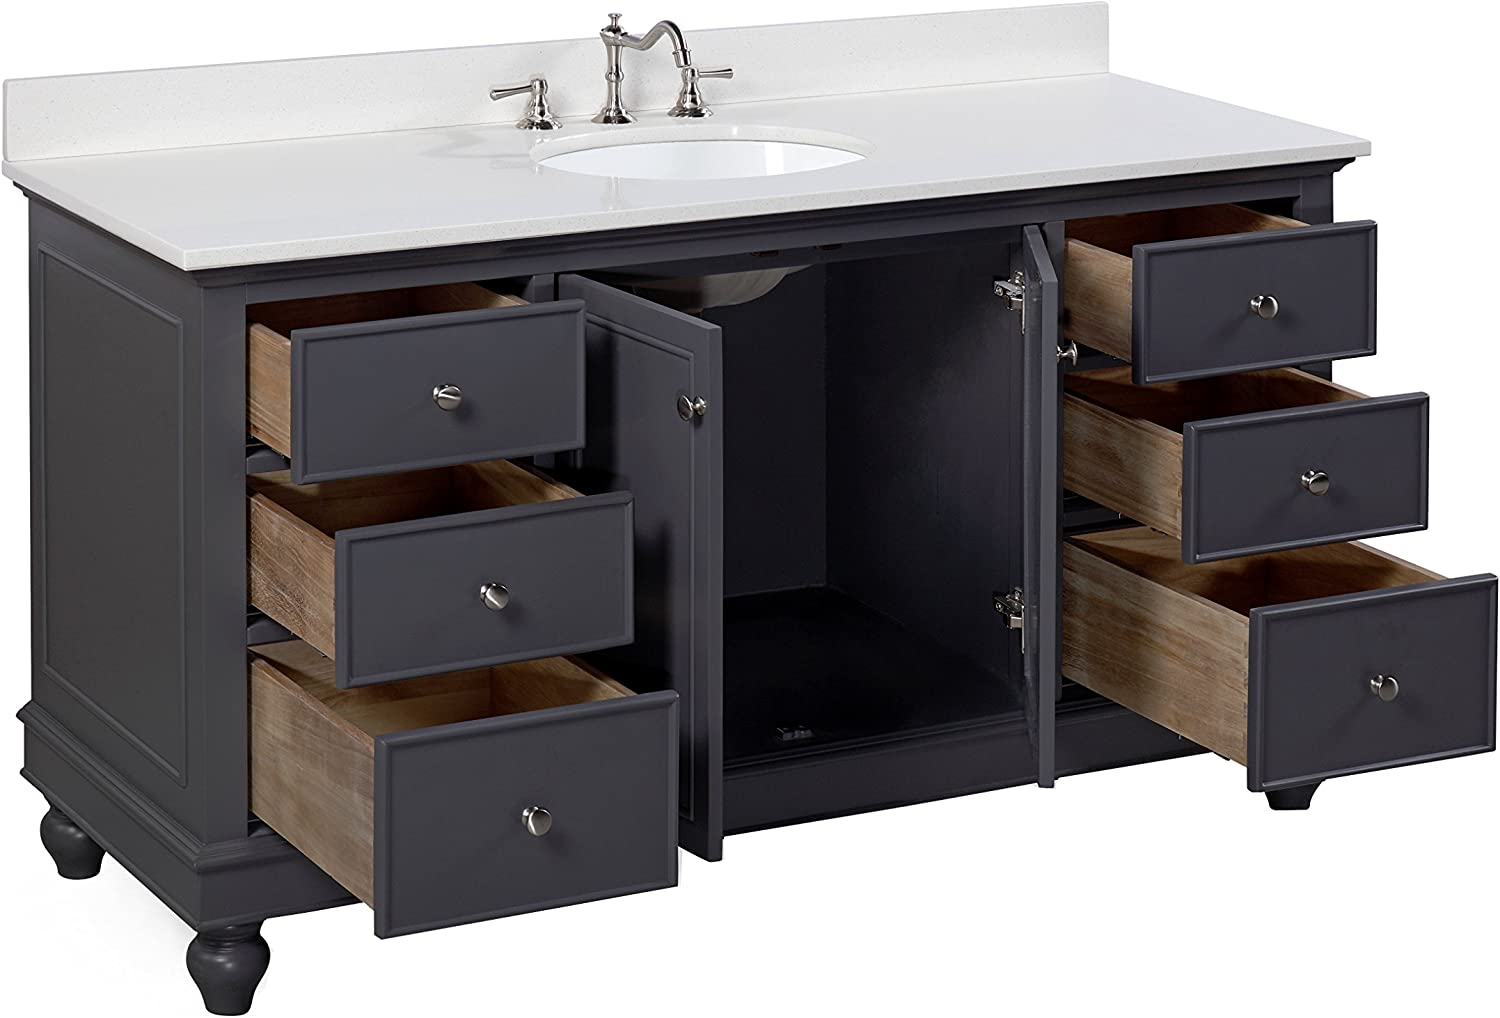 Amazon Com Bella 60 Inch Single Bathroom Vanity Quartz Charcoal Gray Includes Charcoal Gray Cabinet With Stunning Quartz Countertop And White Ceramic Sink Home Improvement